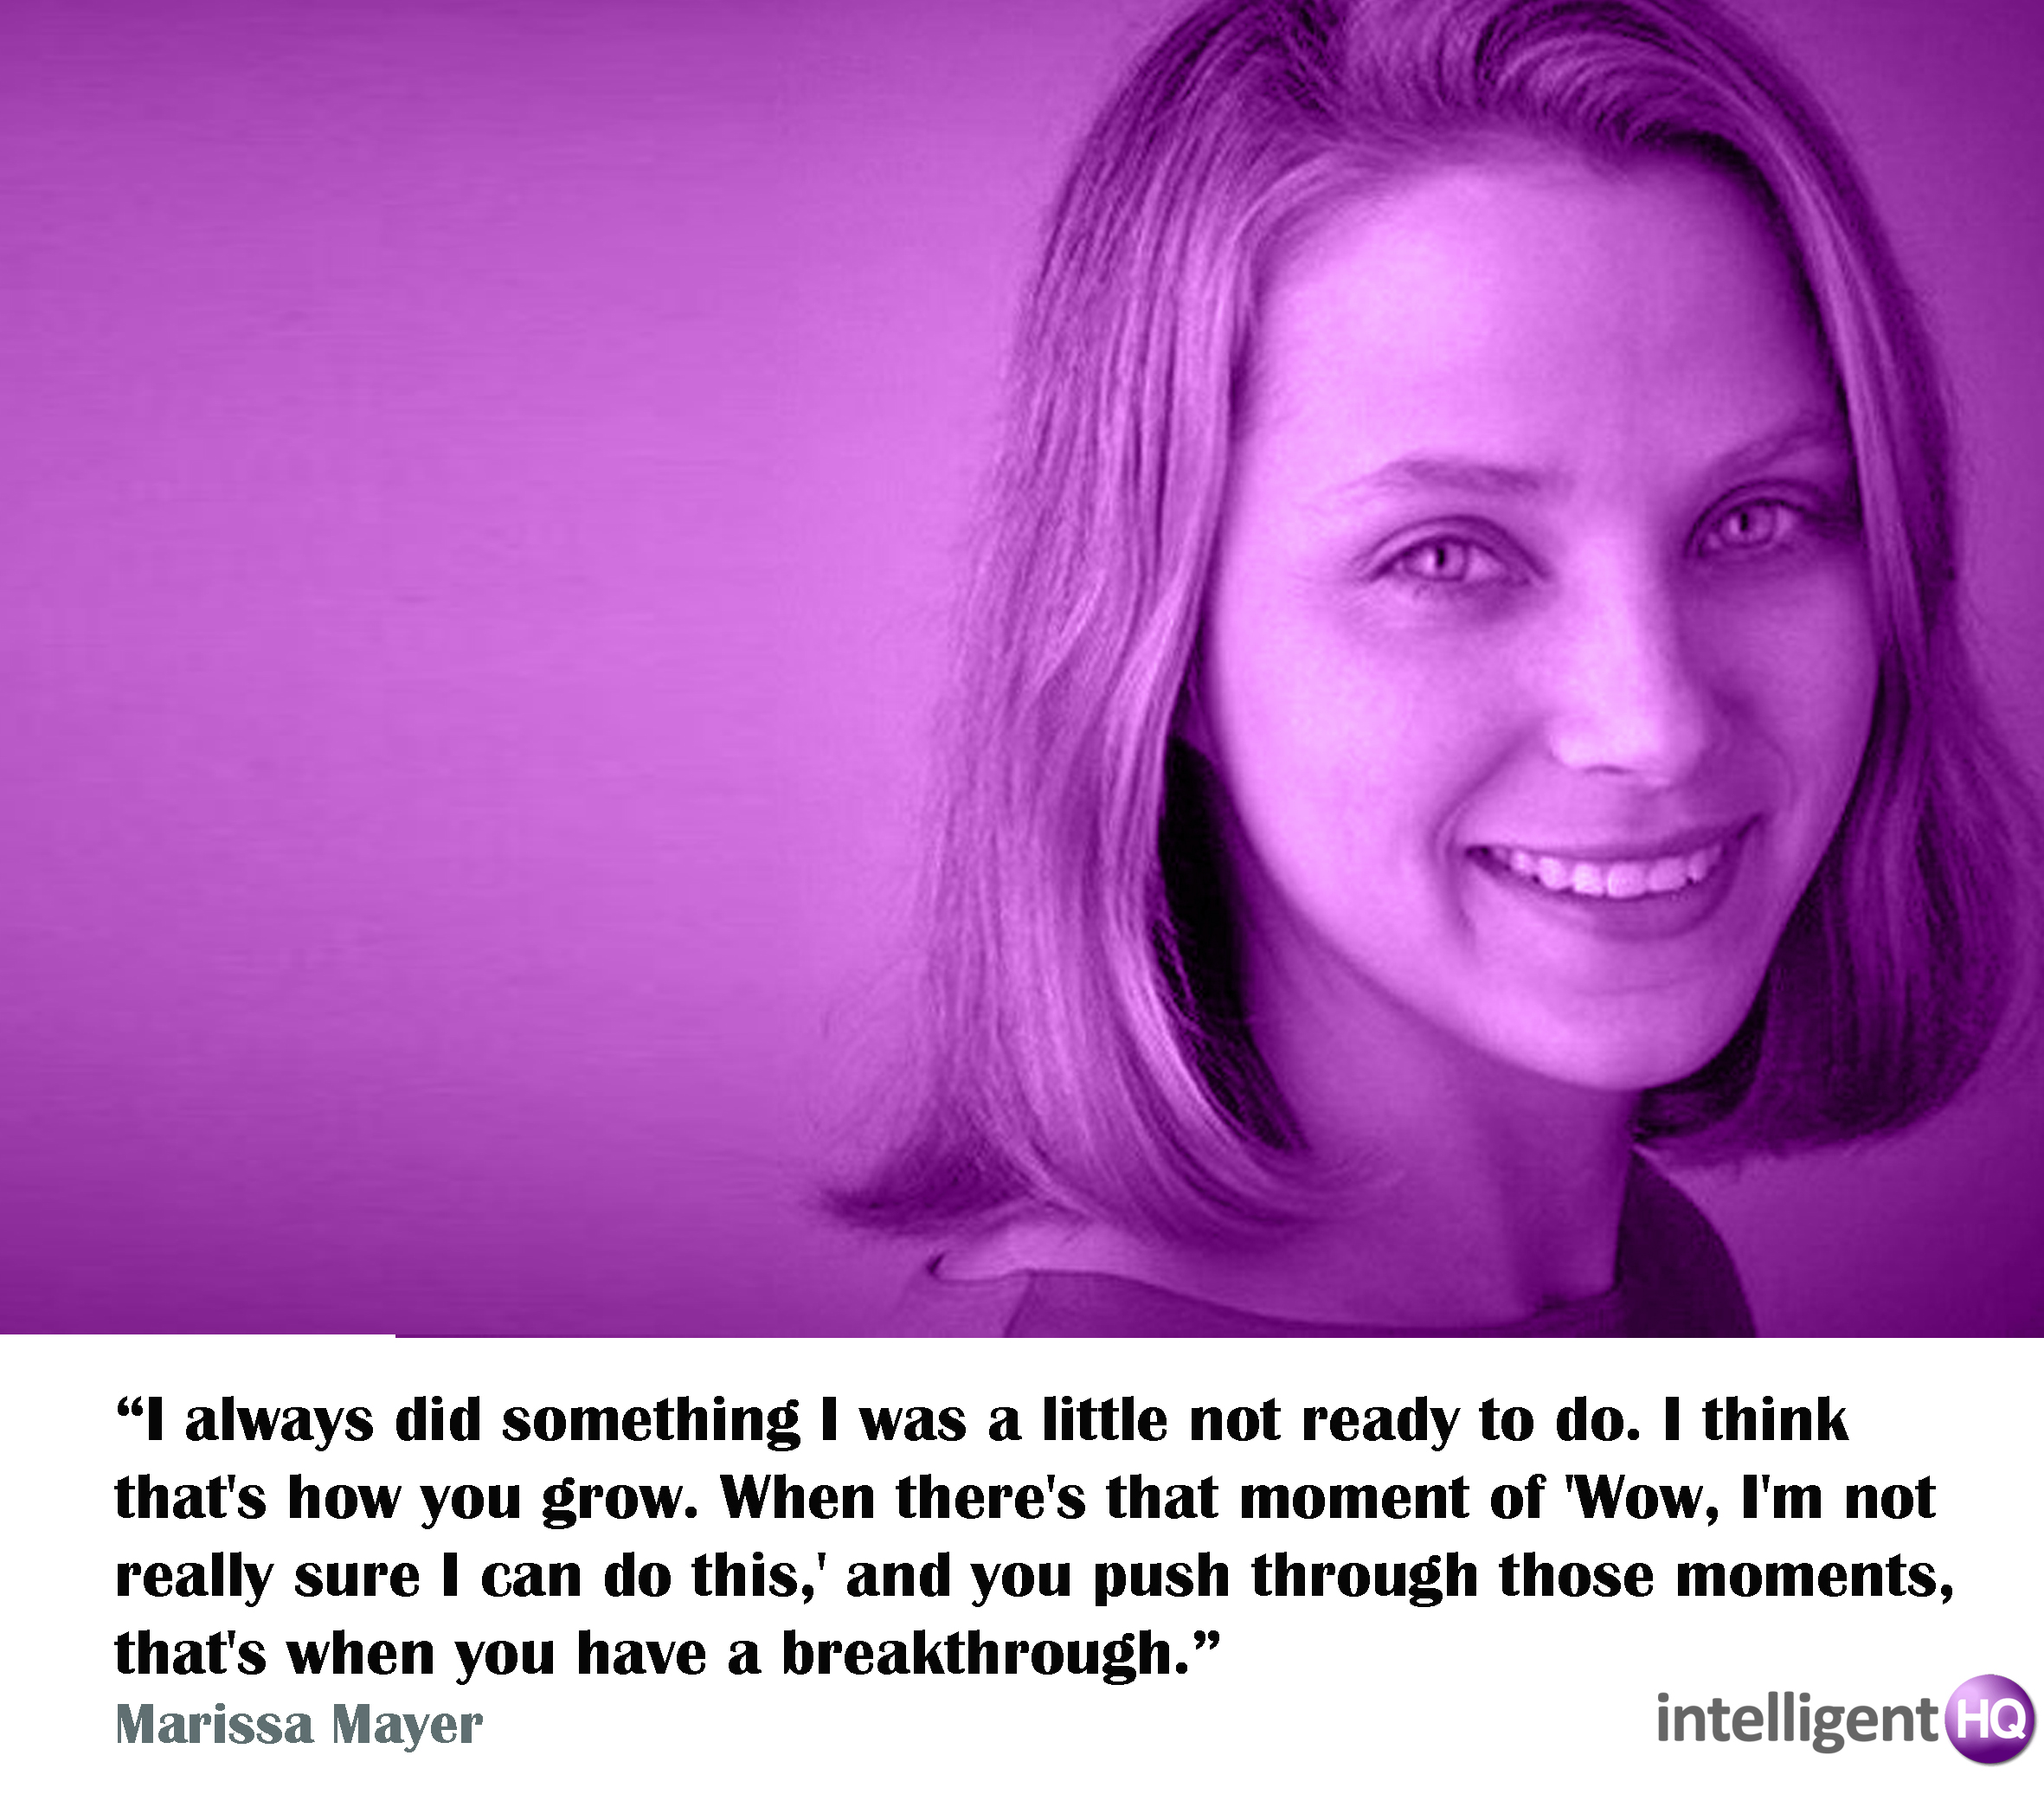 Quote by Marissa Mayer. Intelligenthq